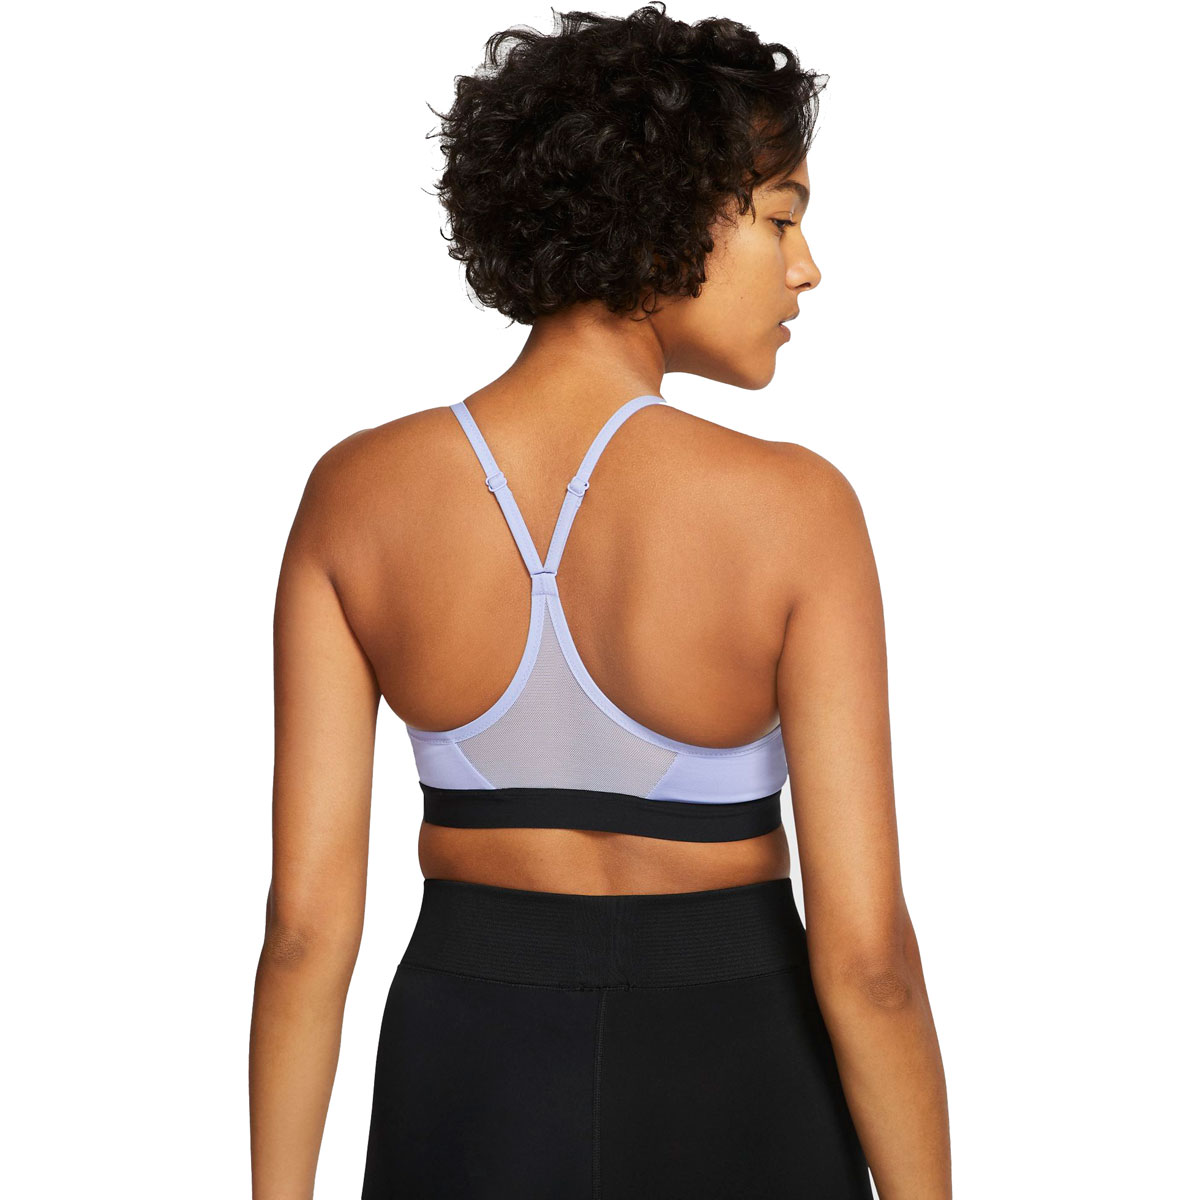 Women's Nike Indy Sports Bra - Color: Light Thistle/Black/Black - Size: XS, Light Thistle/Black/Black, large, image 2